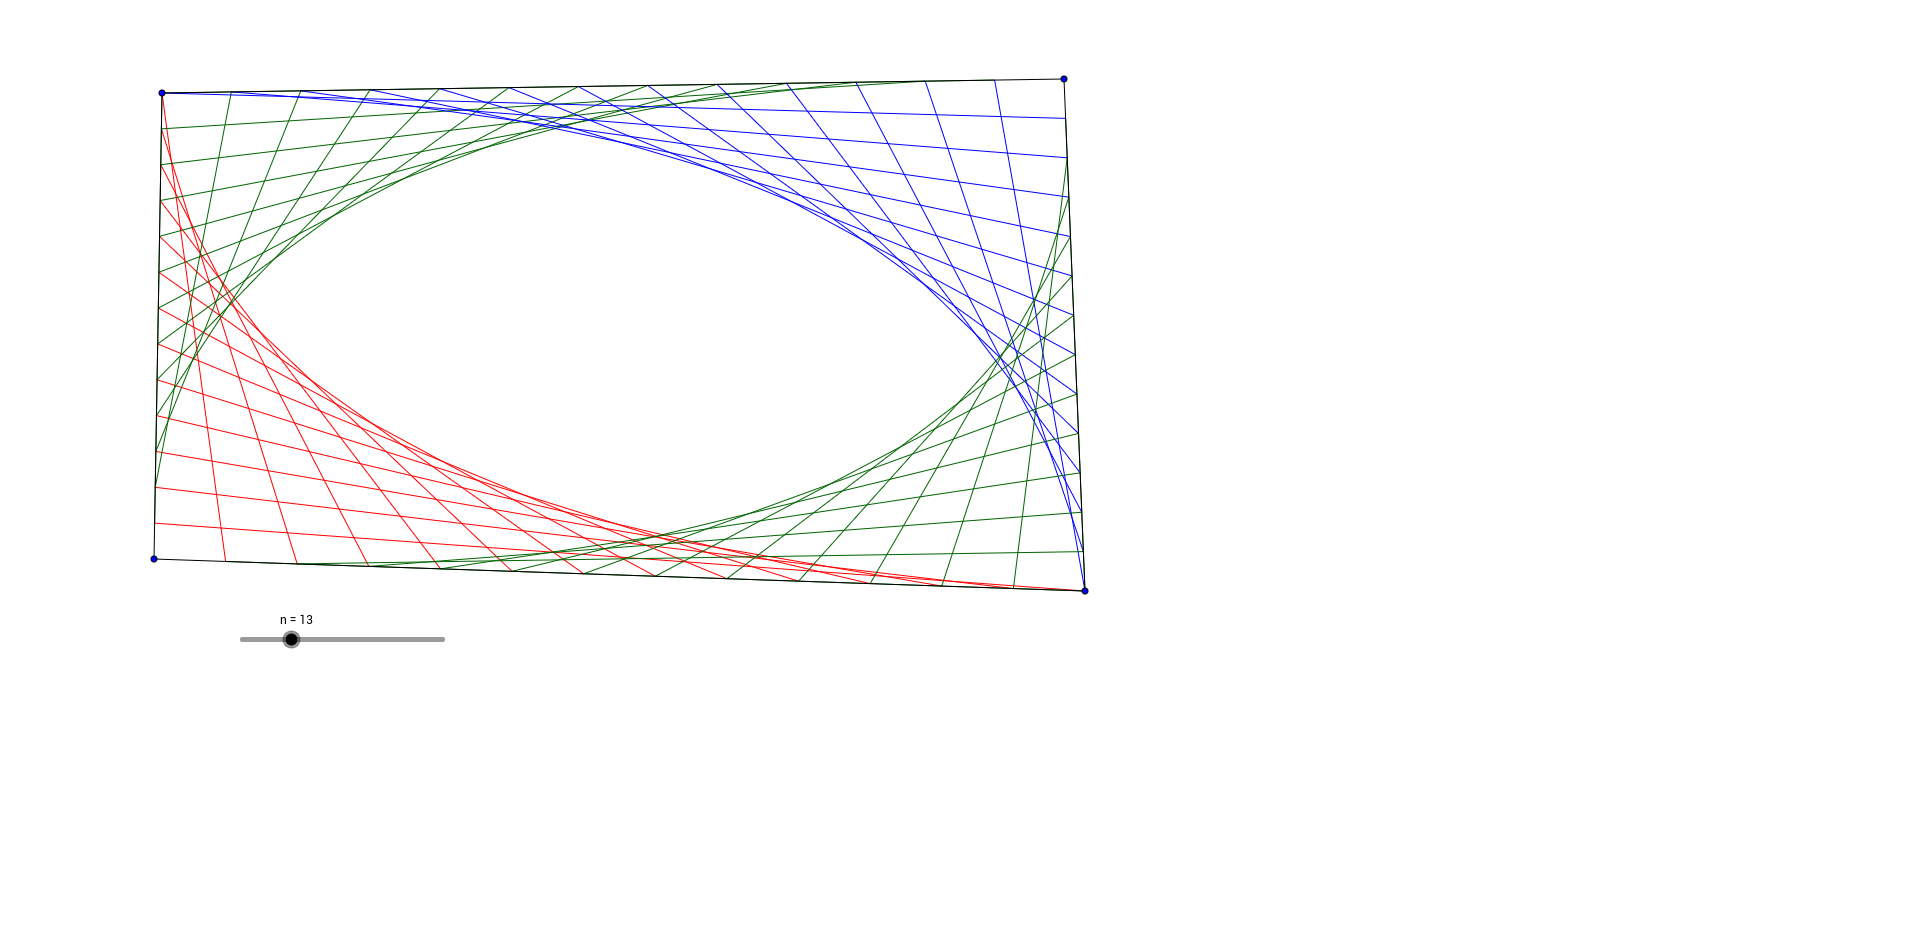 8.7 Bezier Curves